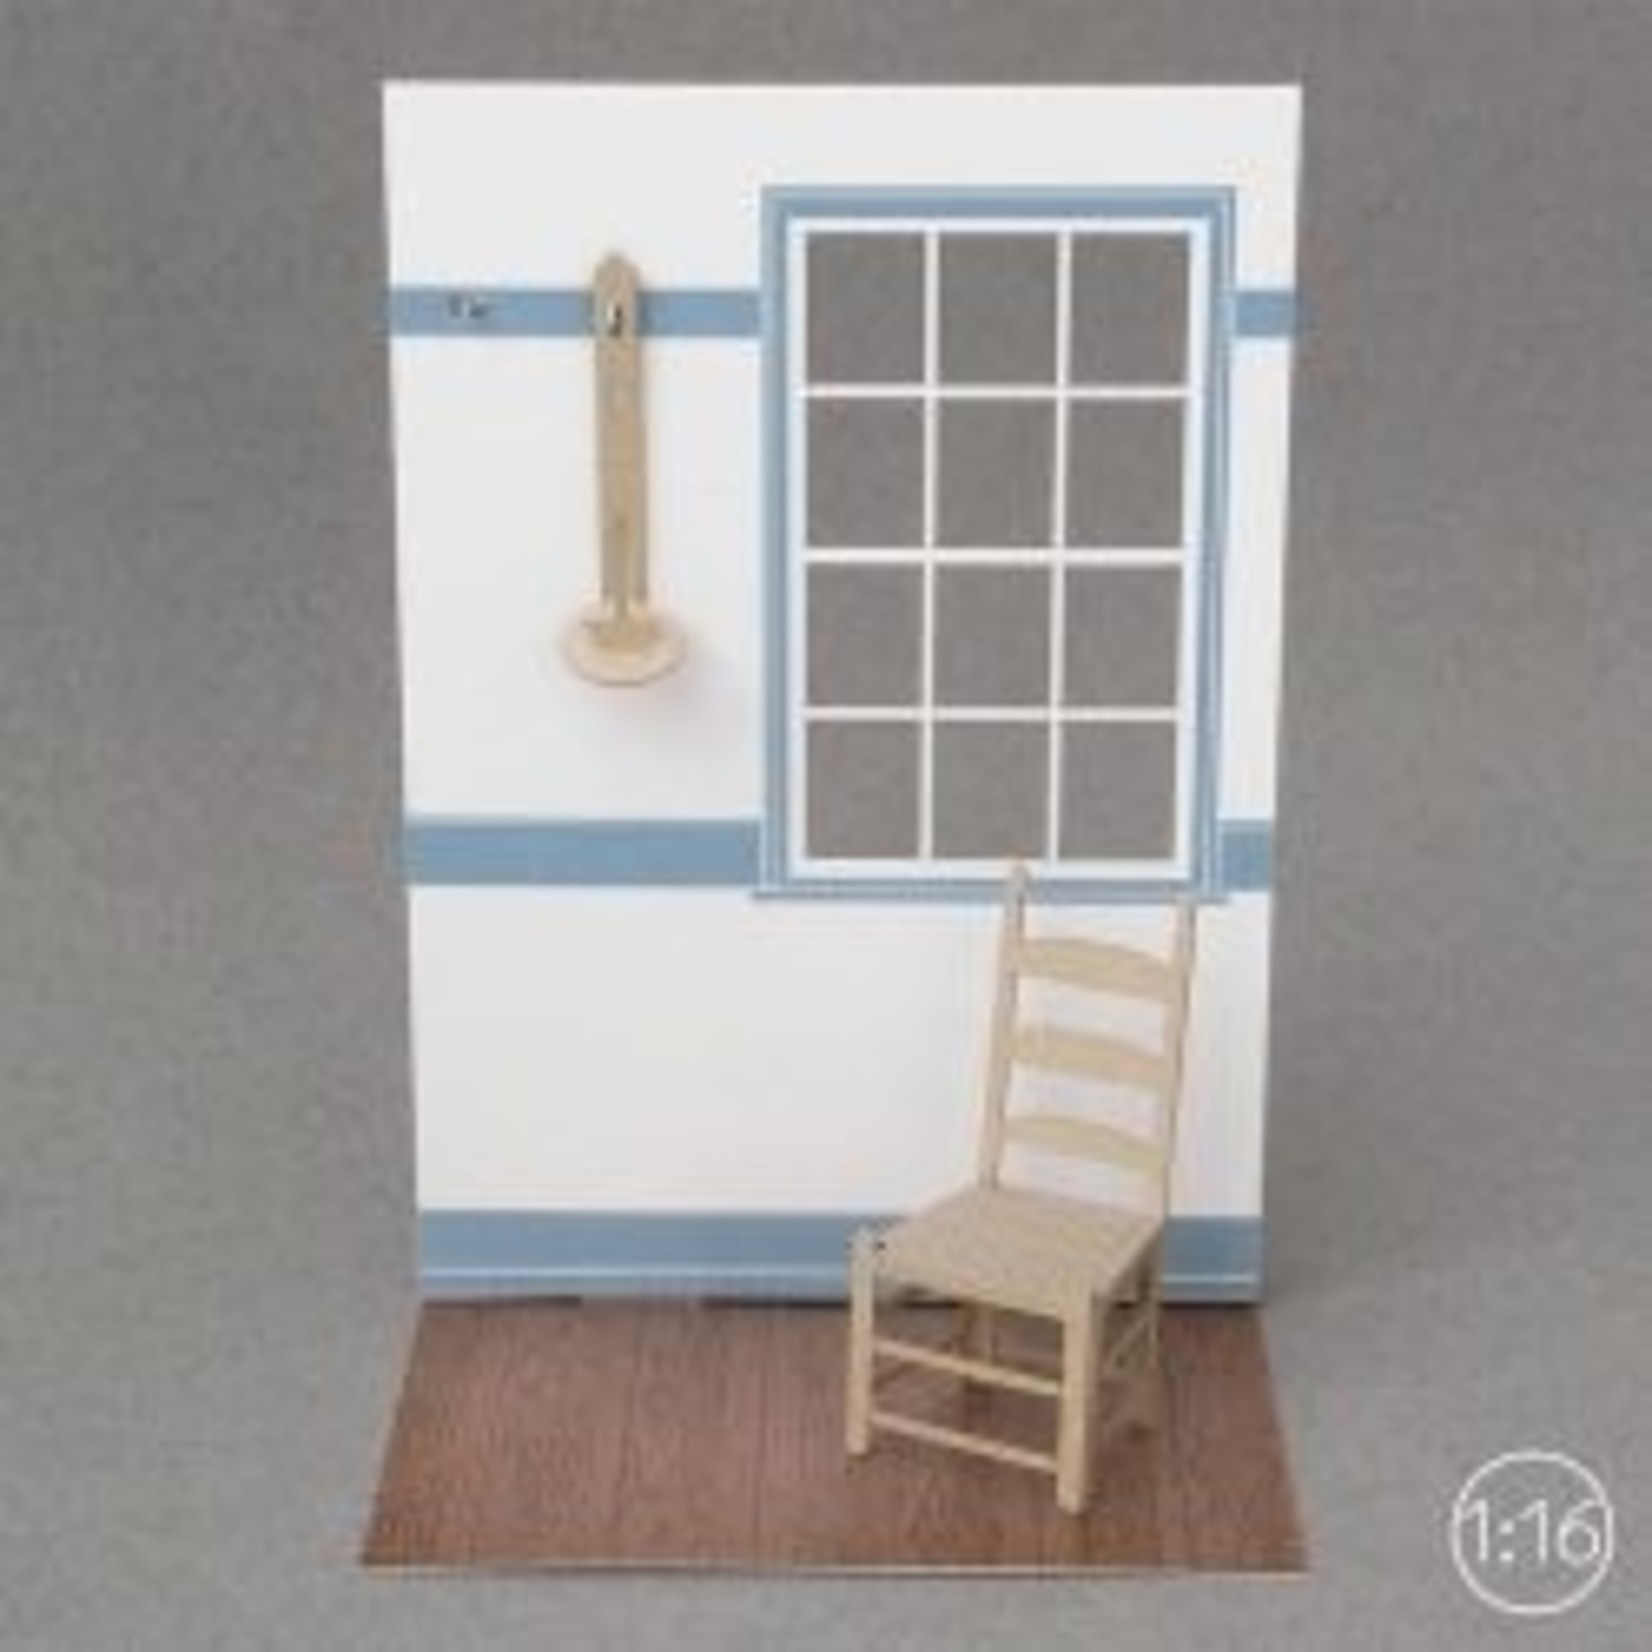 Based on Roots Shaker chair